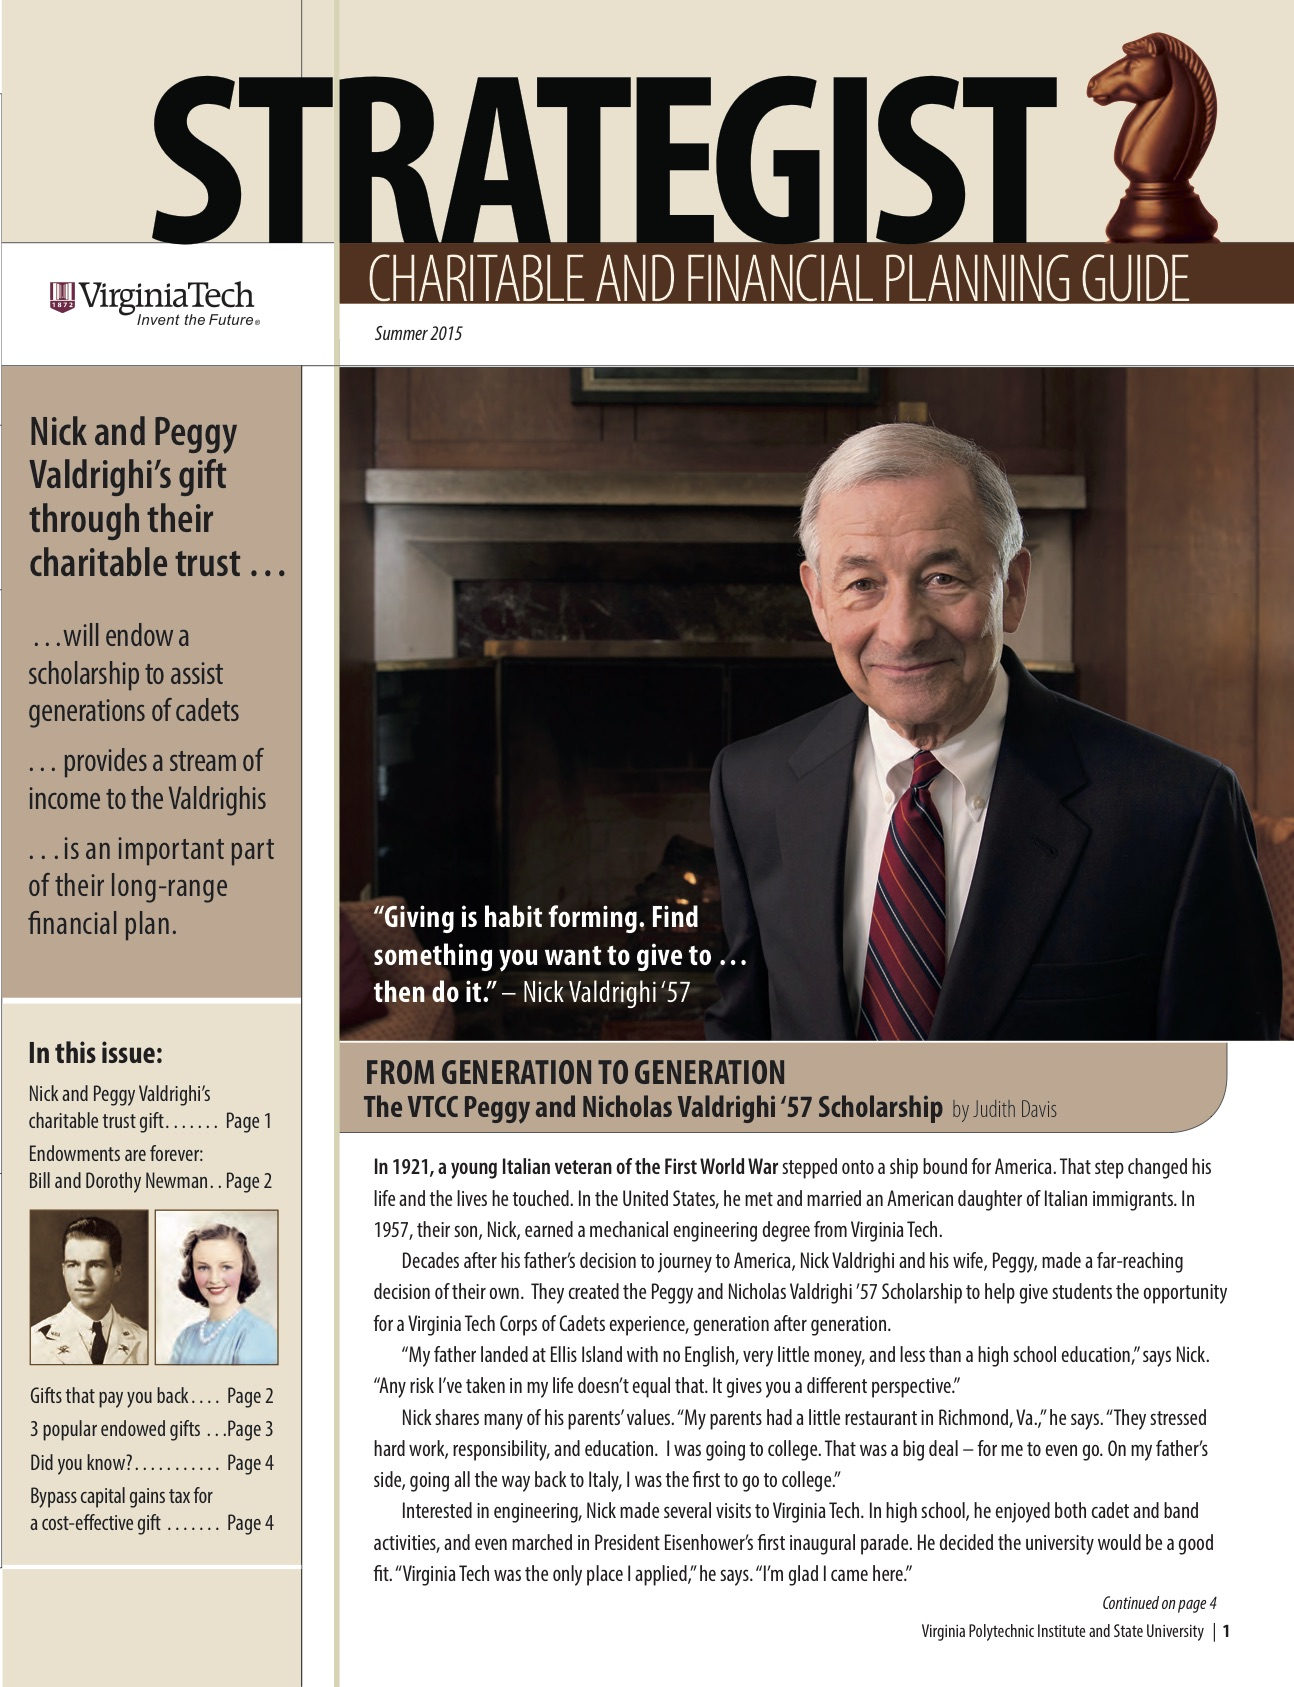 Strategist Summer 2015